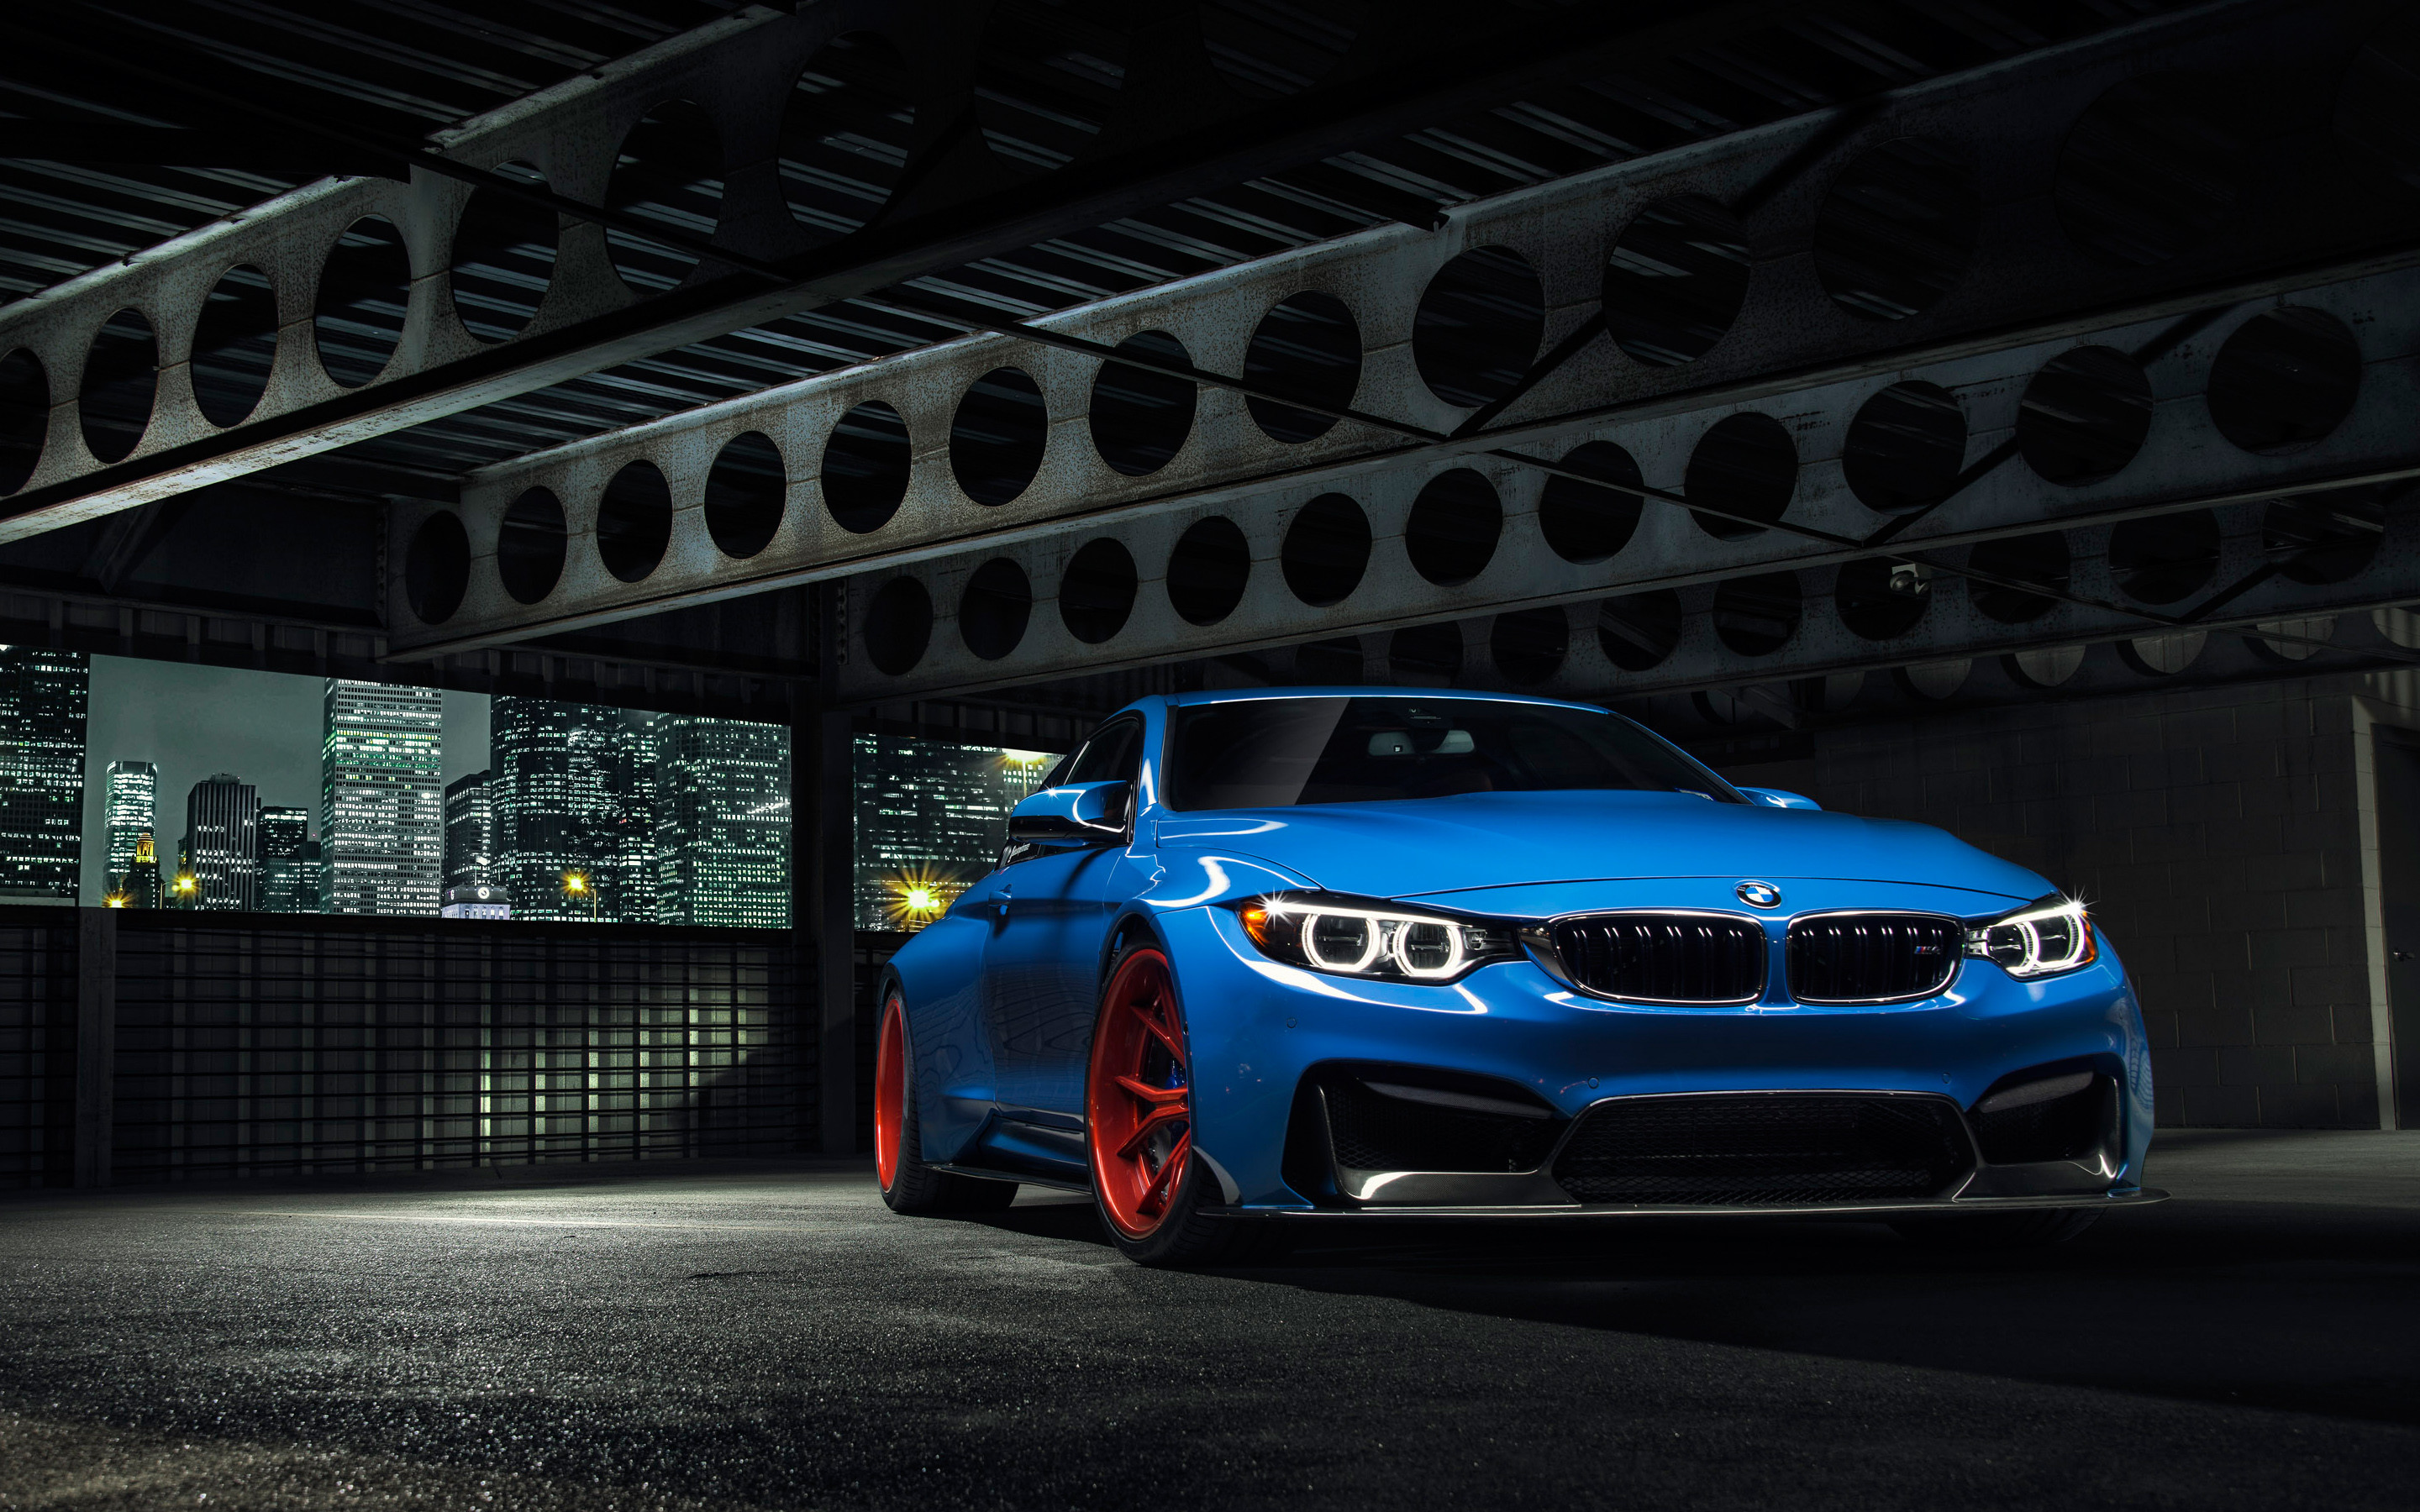 71 Bmw Pics Wallpapers on WallpaperPlay 2880x1800